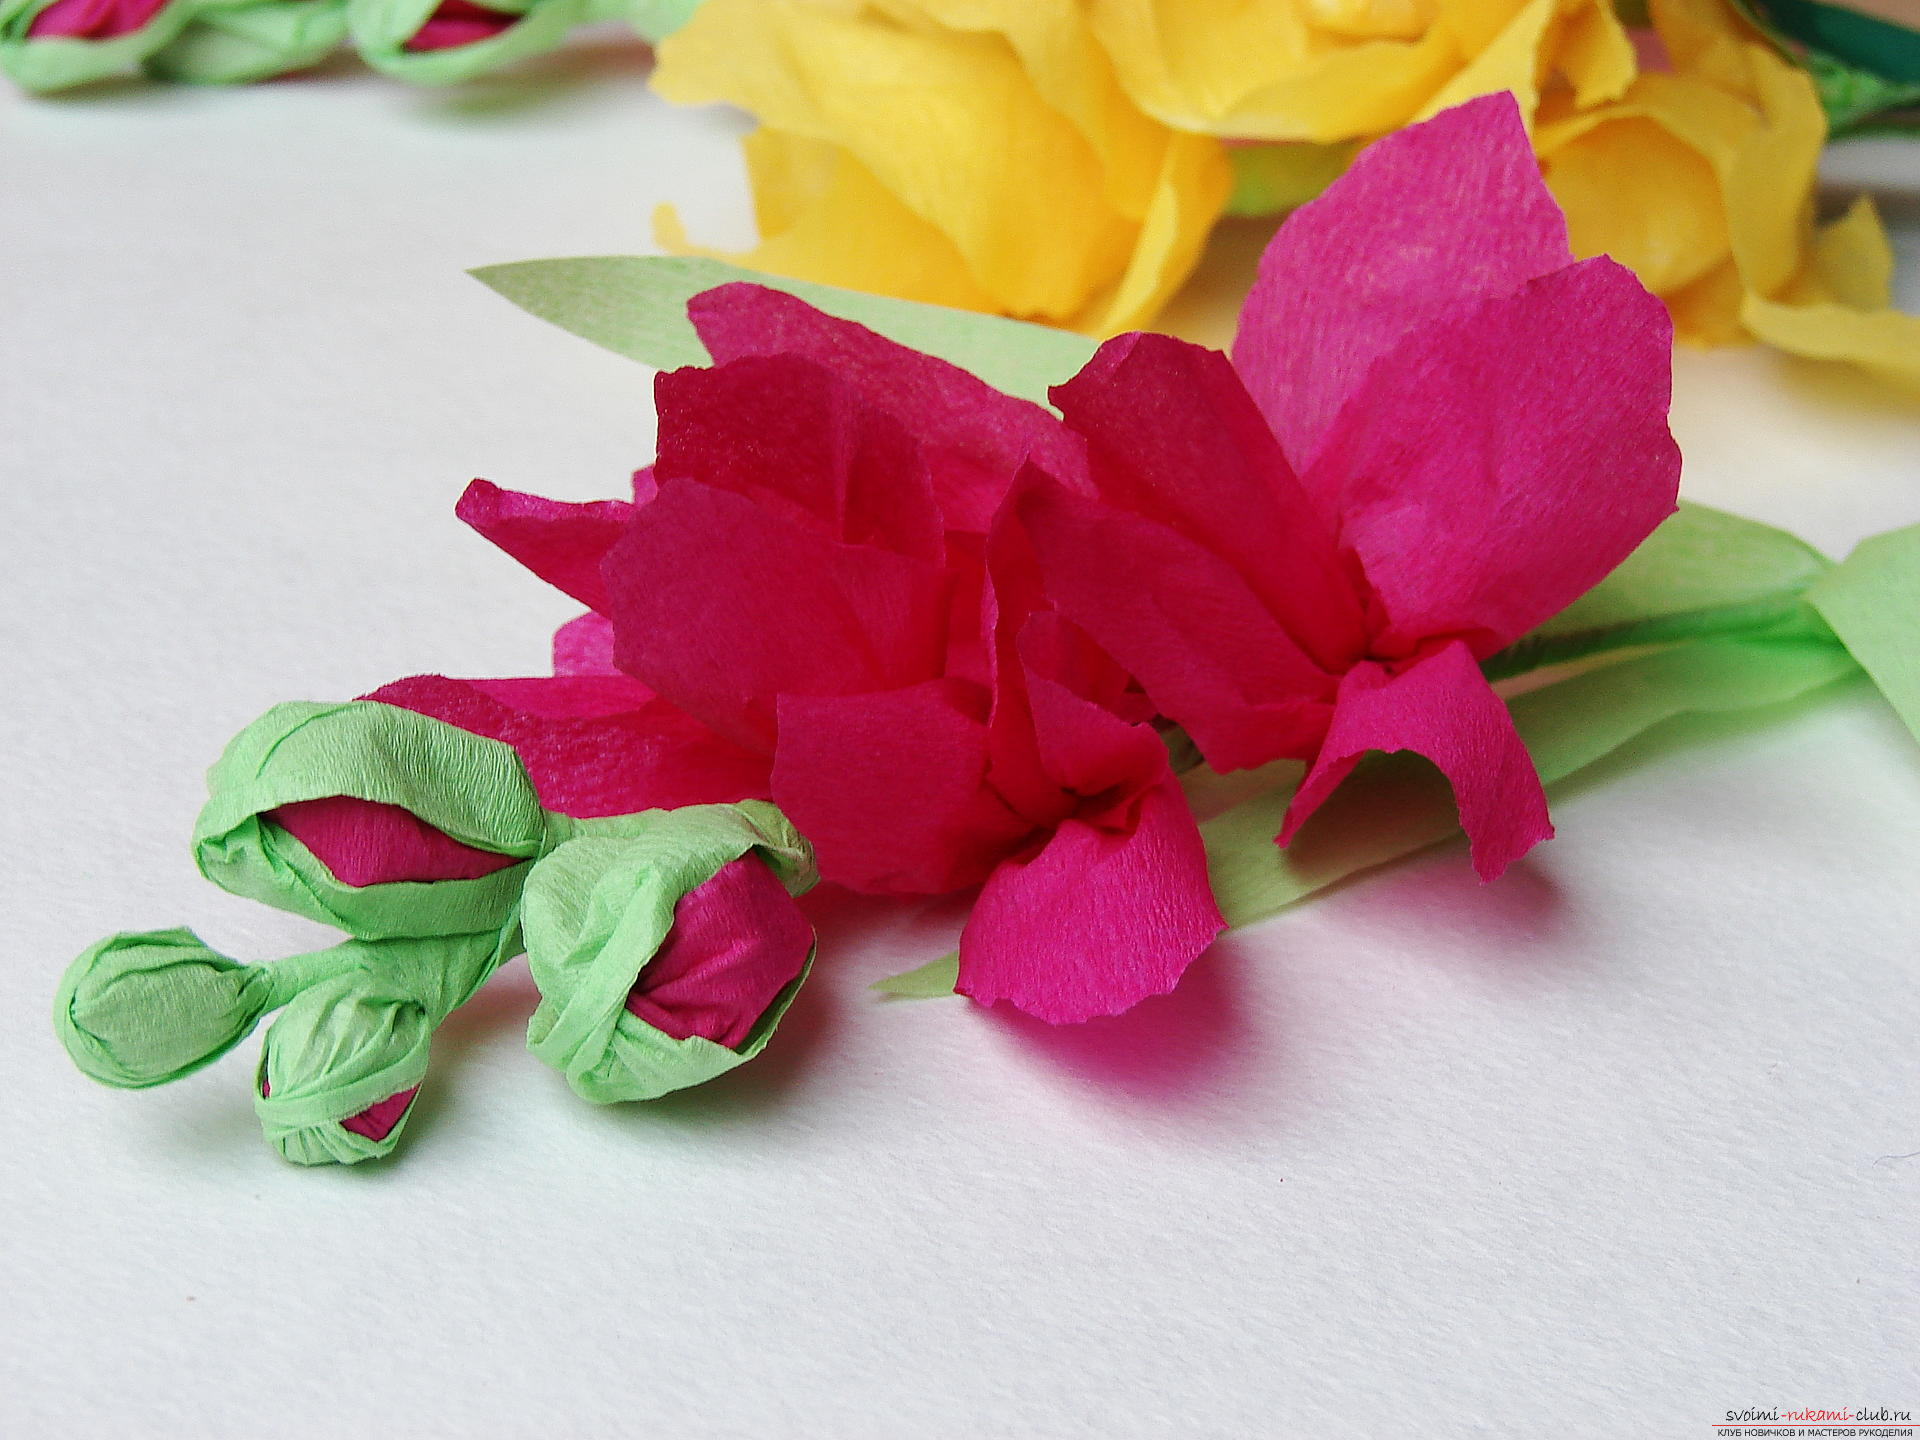 This master class will teach you how to make gladioli flowers from paper by yourself. Photo # 33